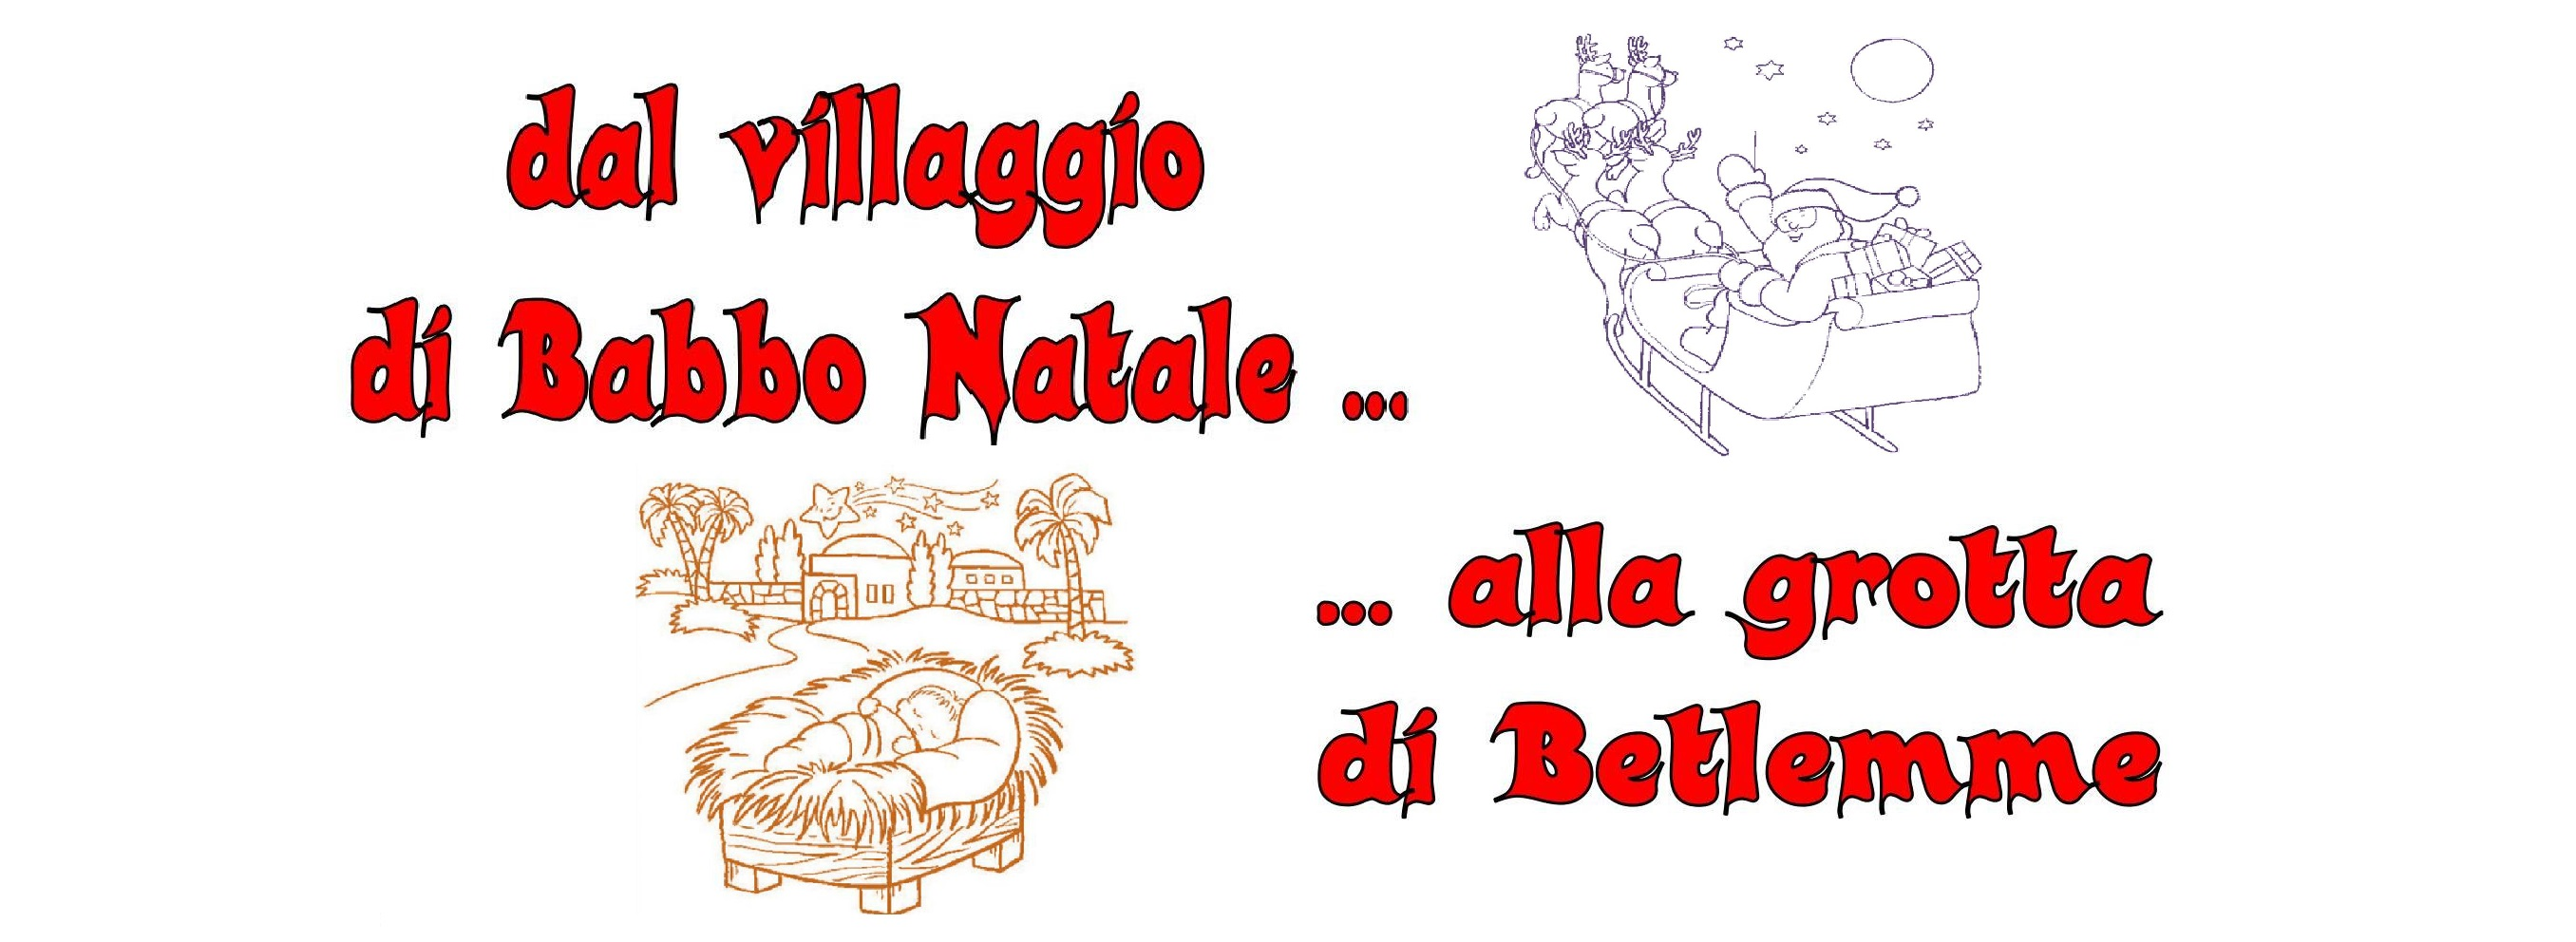 Natale seconde A B